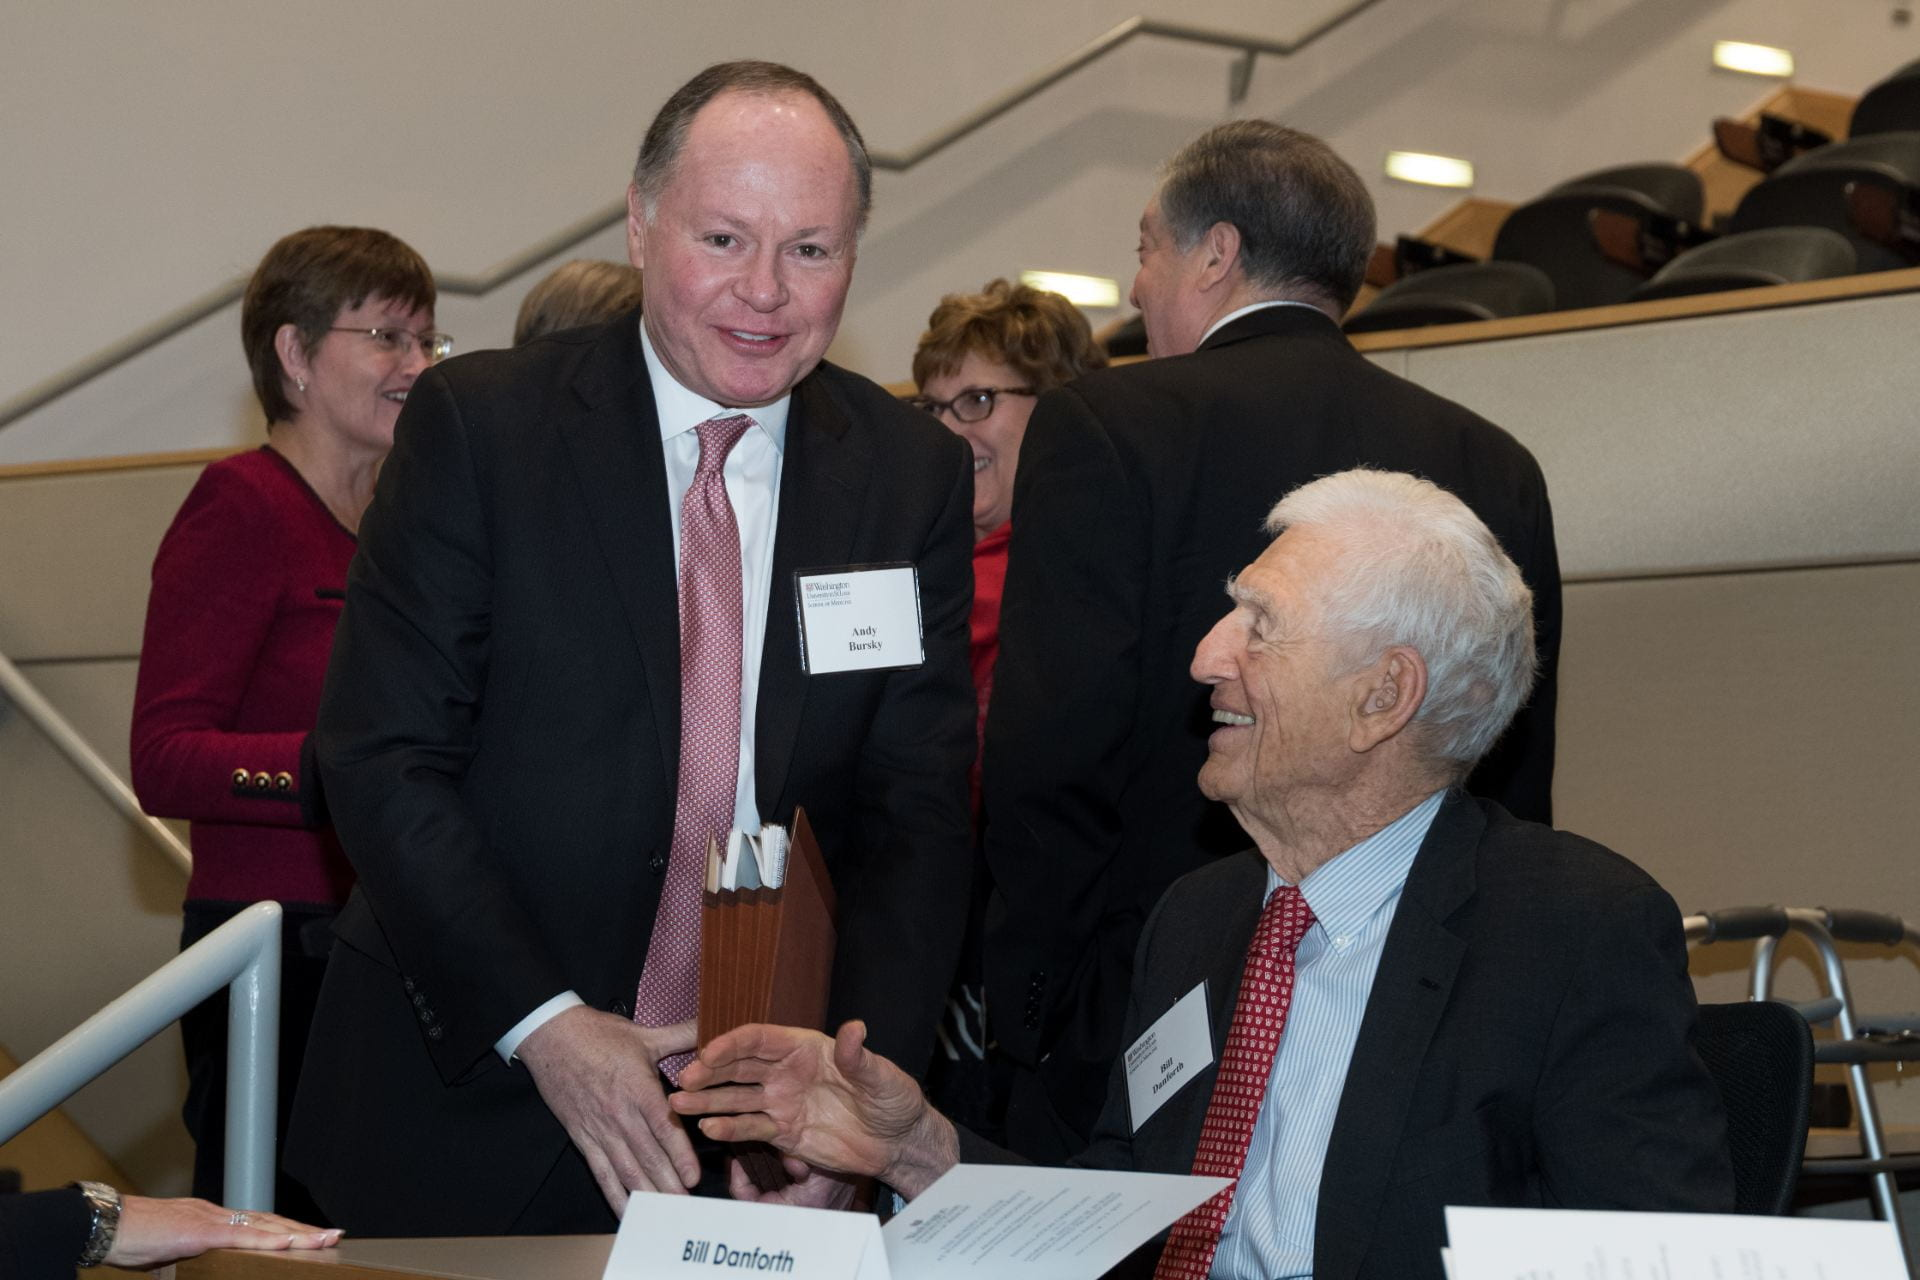 Andy Bursky and Chancellor Danforth